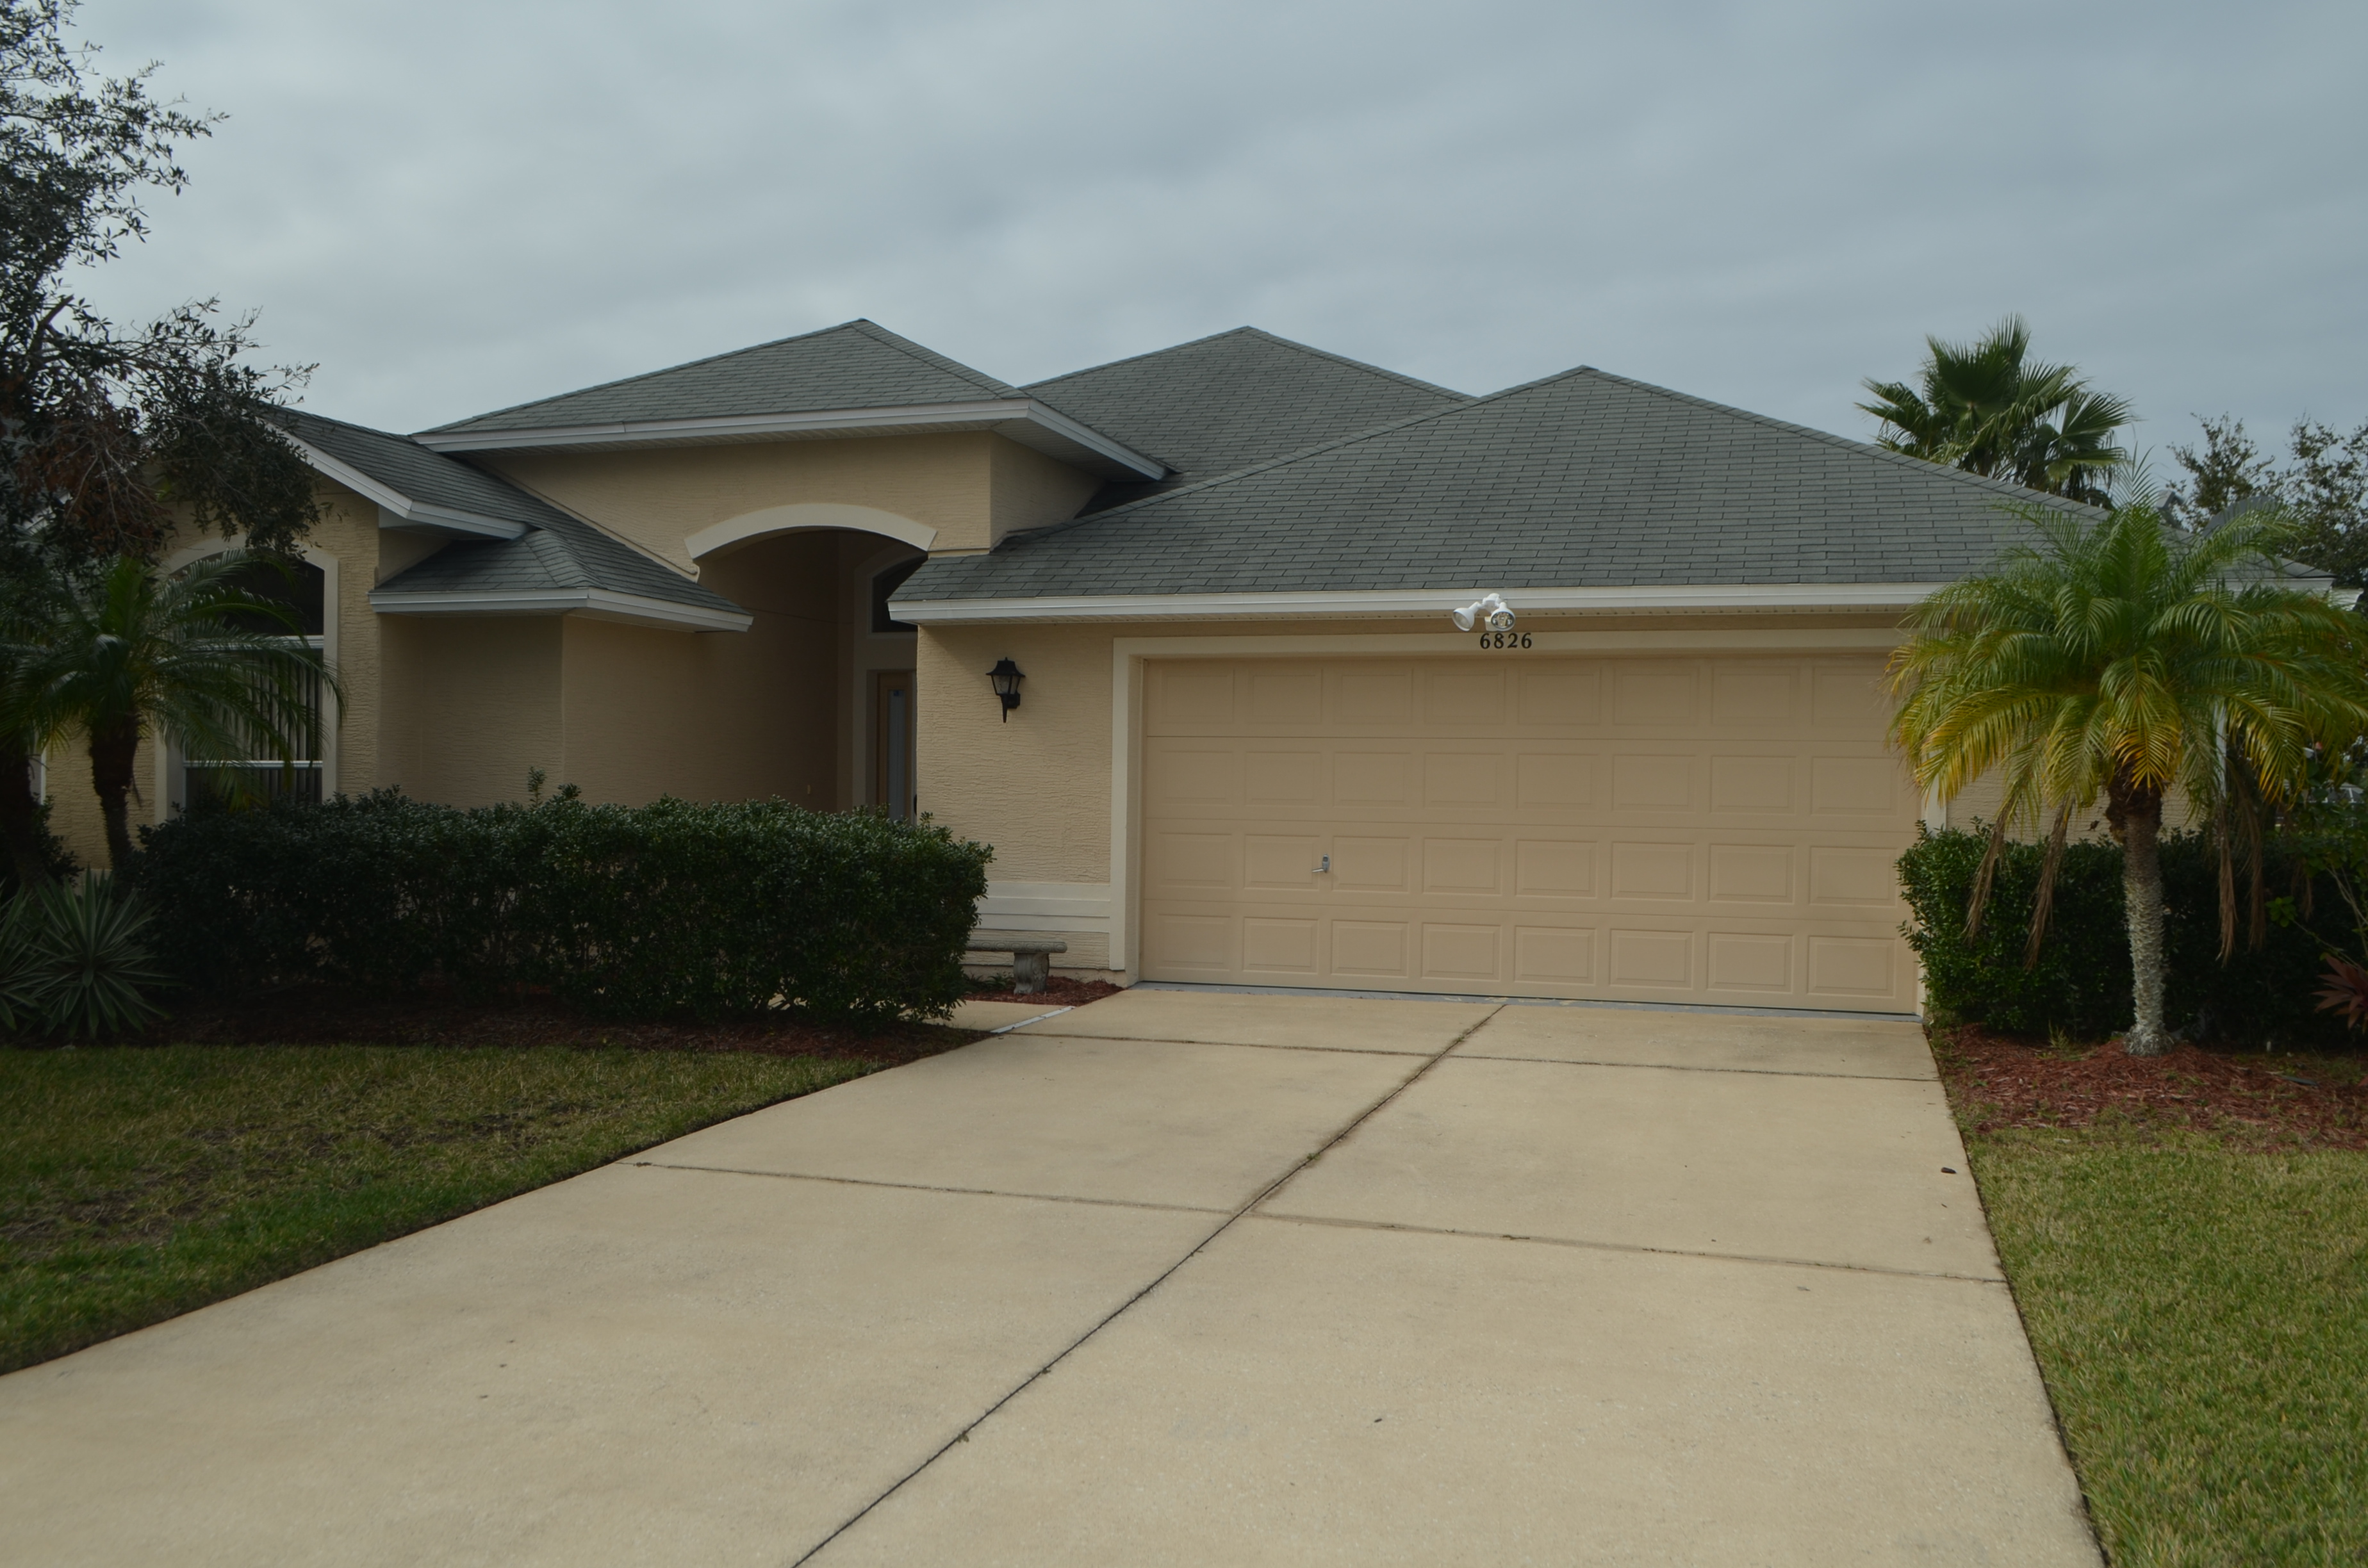 Apartments and houses for rent near me in port orange - Houses for rent port orange ...